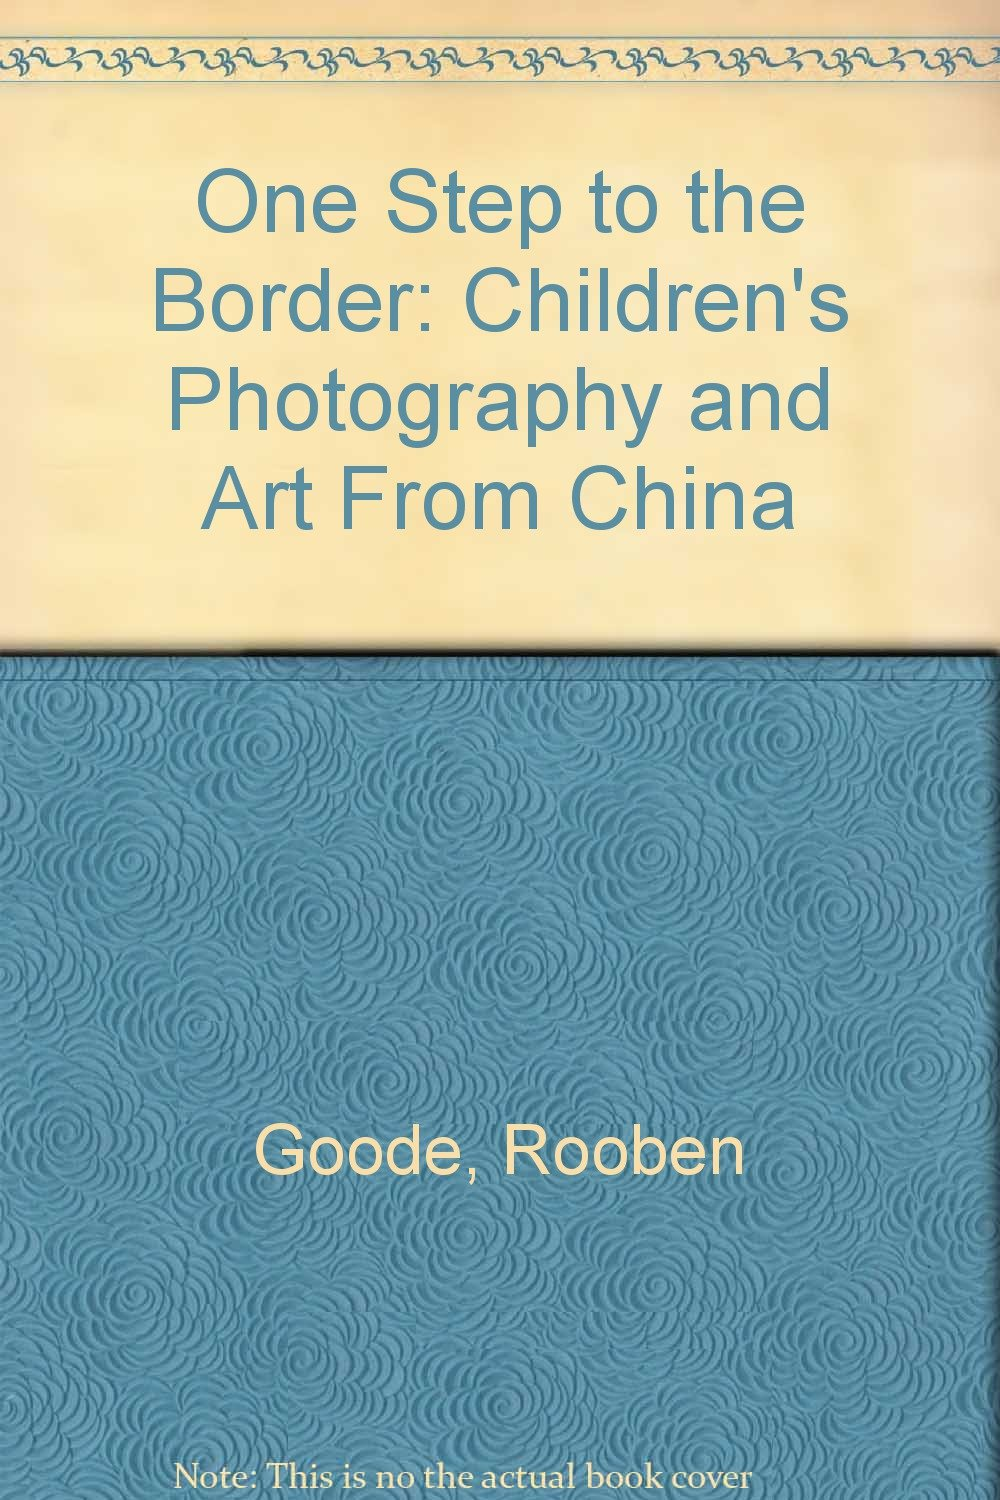 One Step to the Border: Children's Photography and Art From China